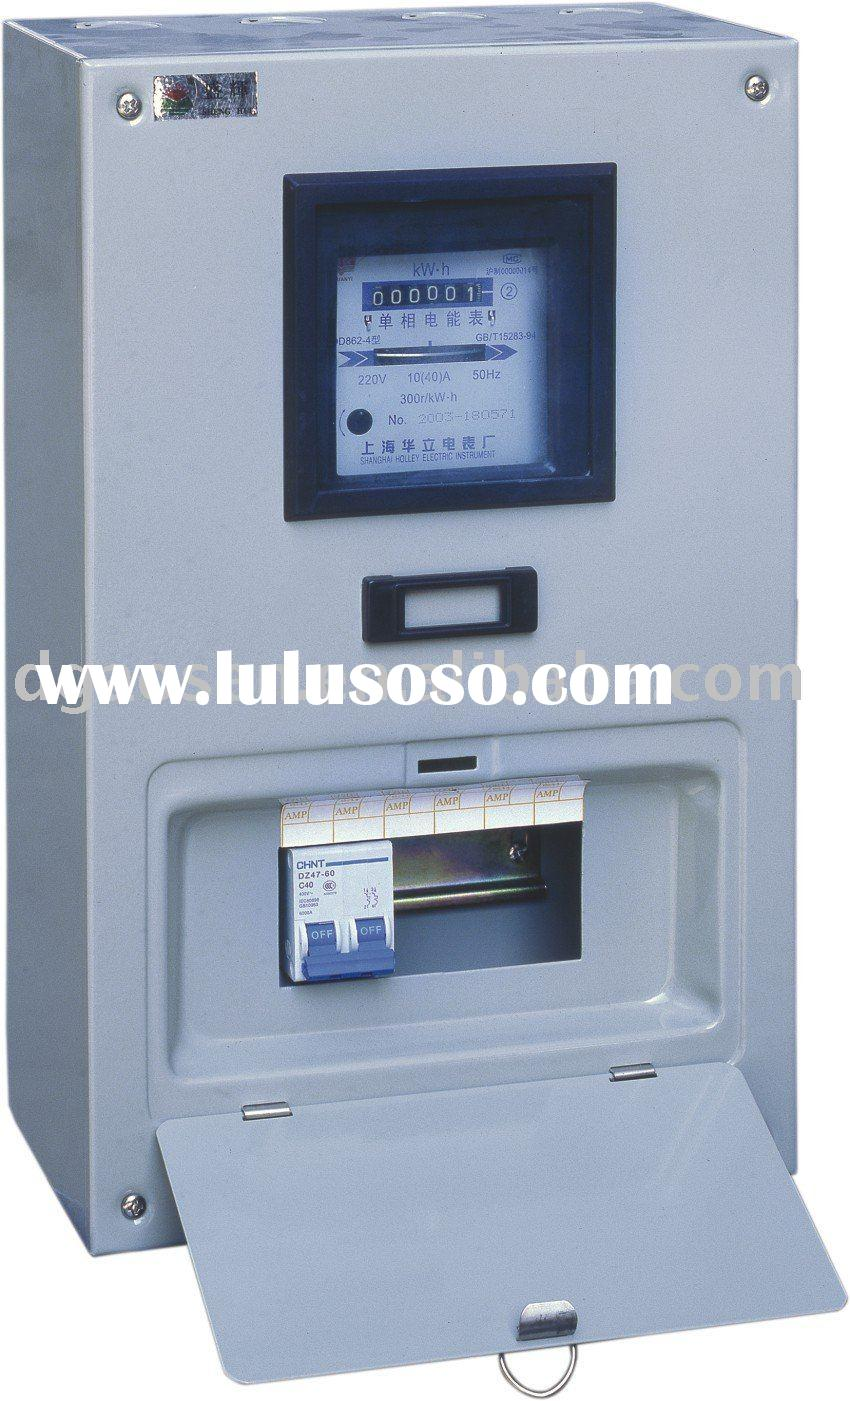 Outdoor Electricity Meter : Outdoor electric meter boxes for sale price china